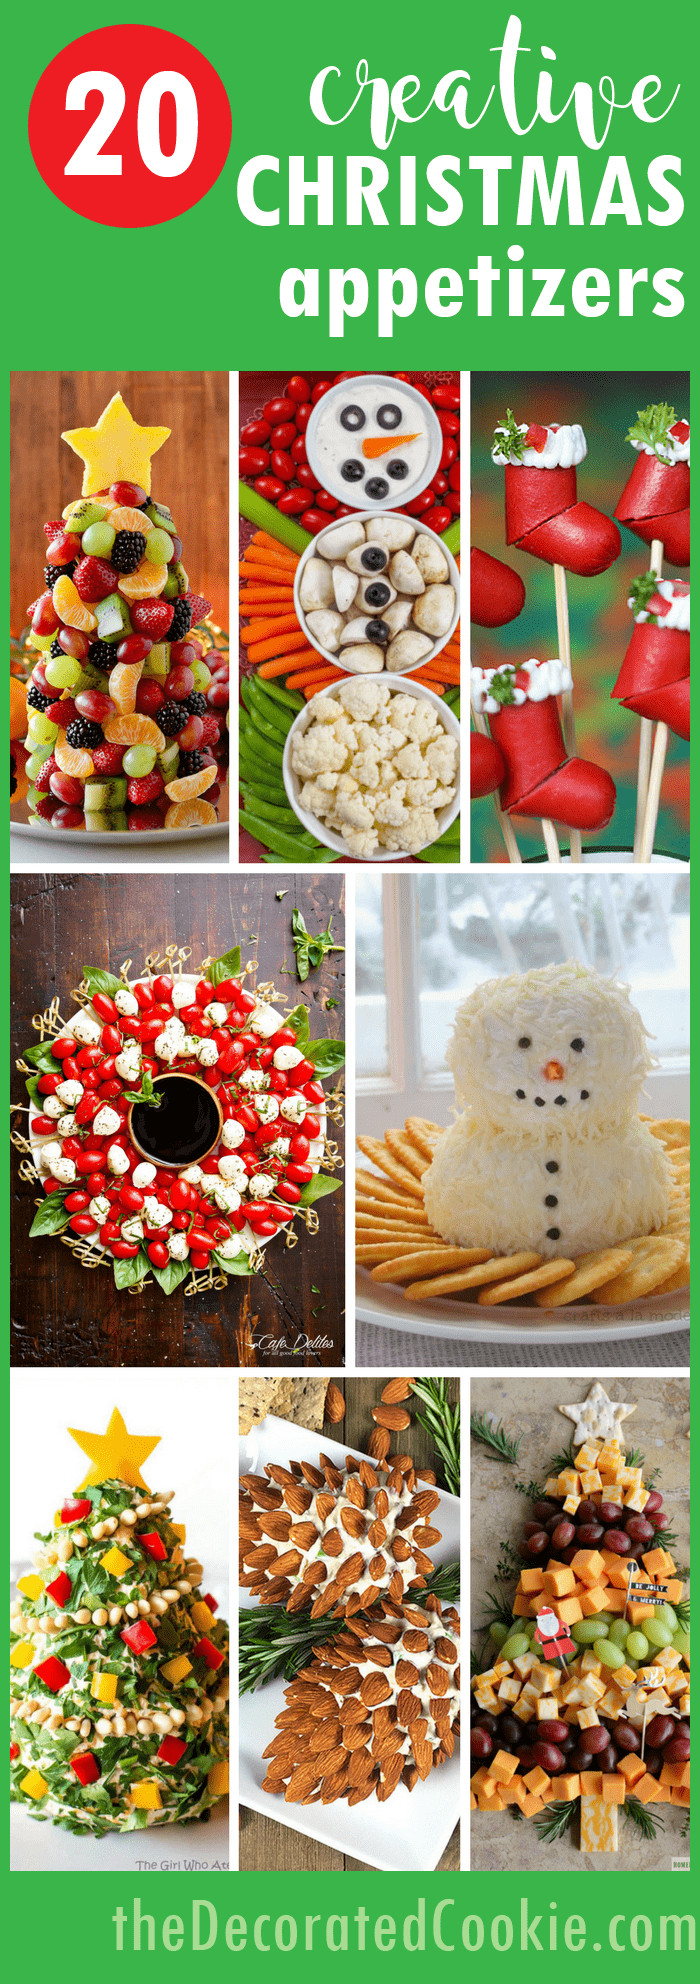 Creative Christmas Appetizers  20 creative Christmas appetizers The Decorated Cookie